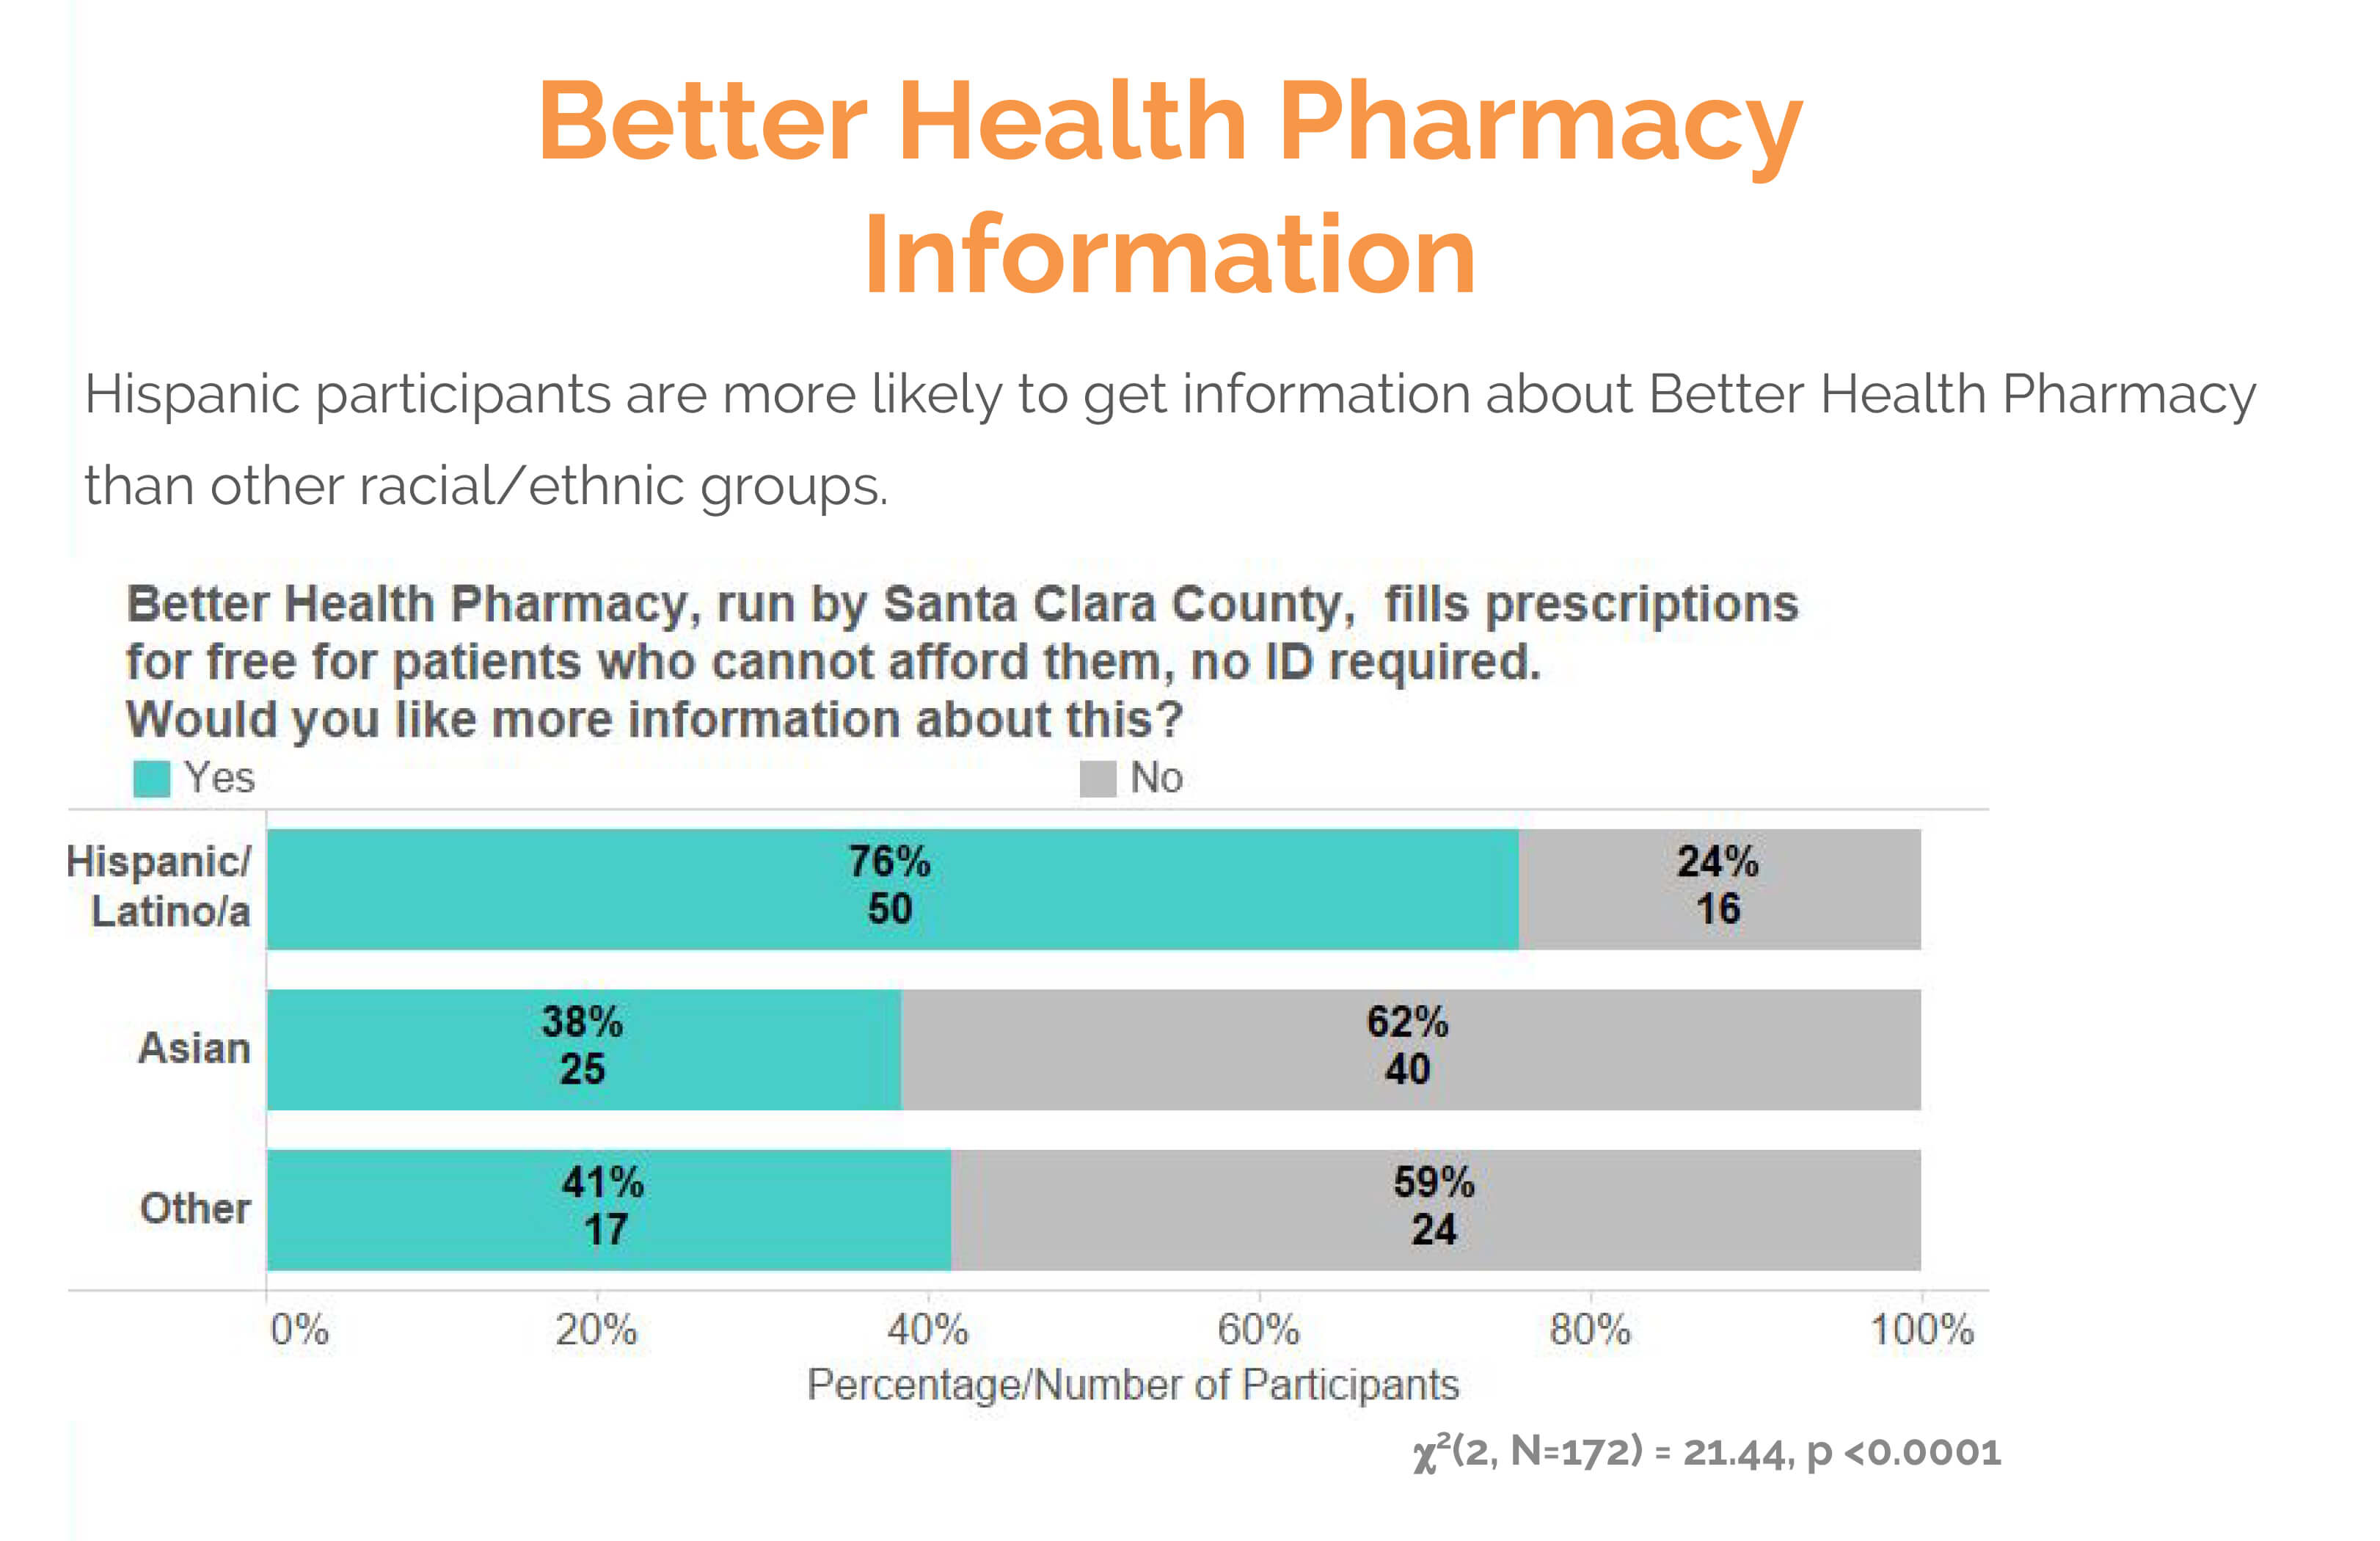 better health pharmacy information text survey results